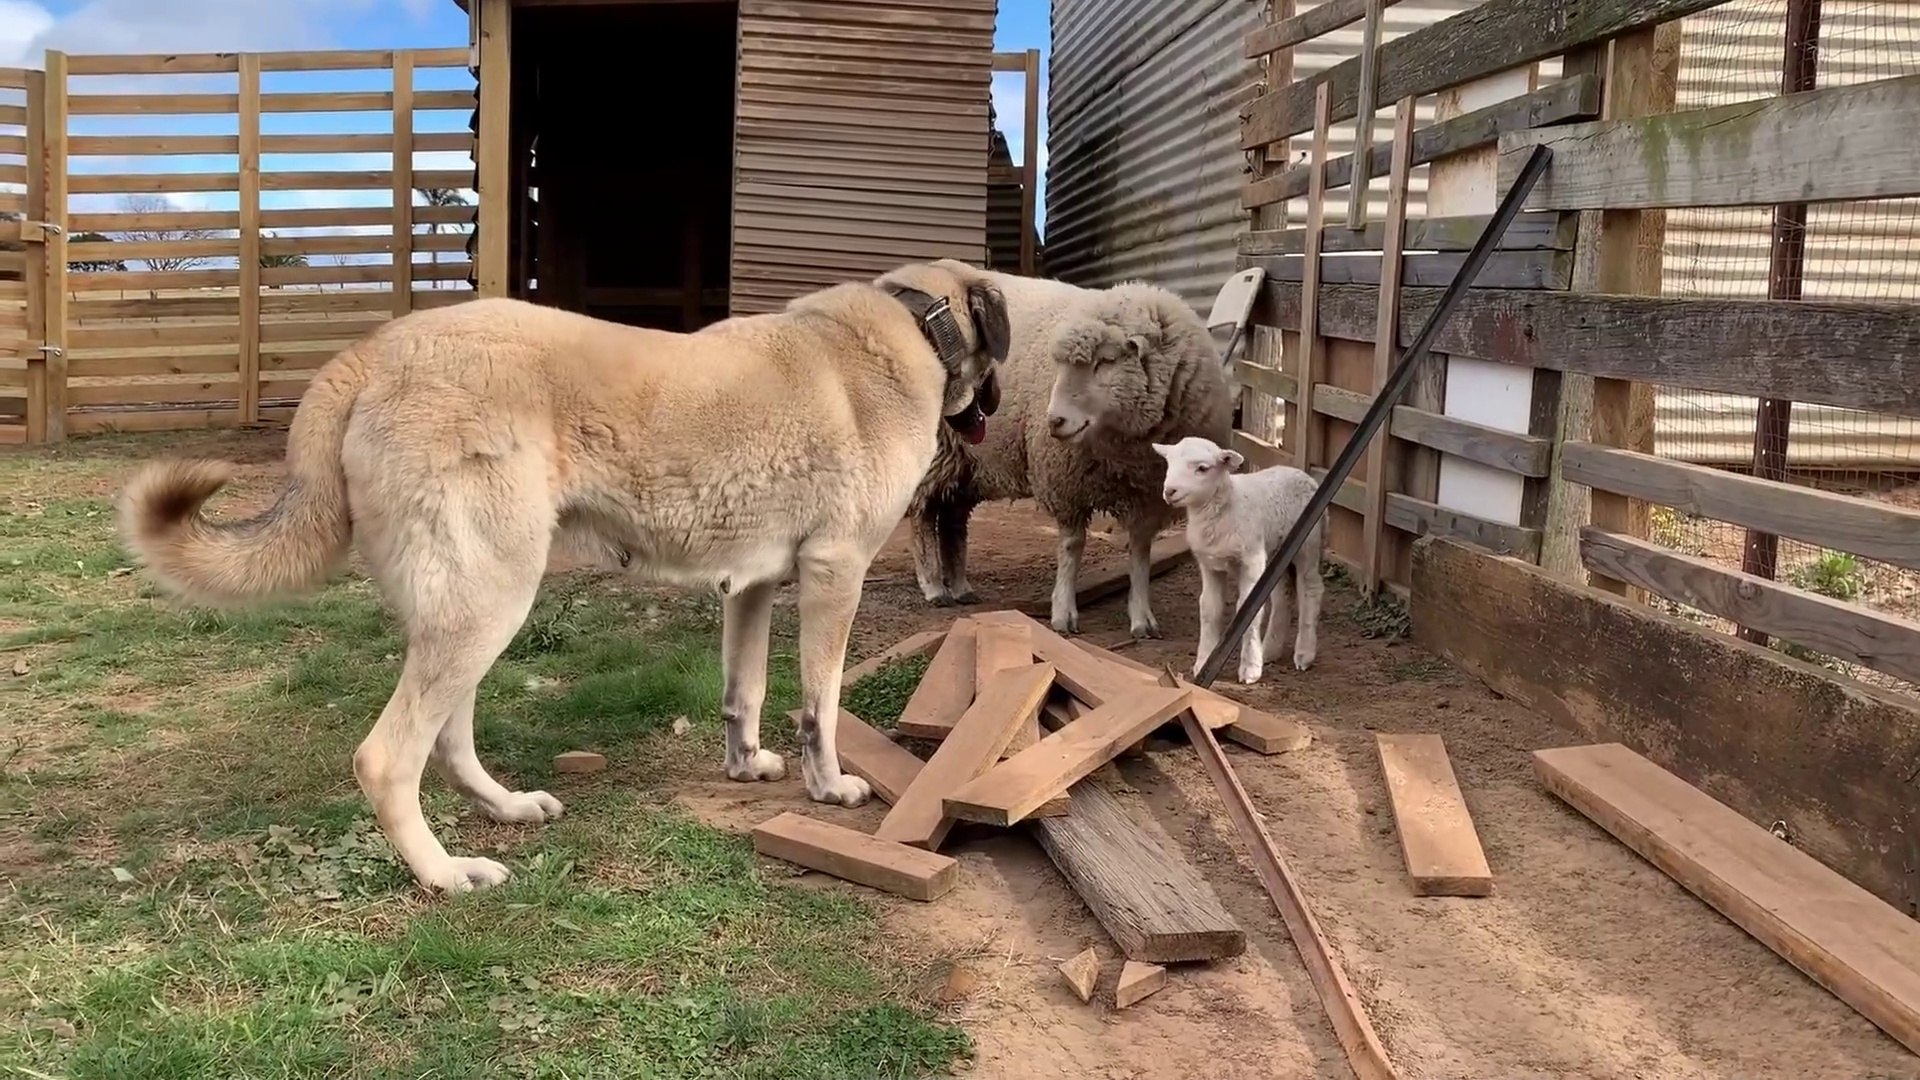 SiVAS KANGAL KOPEGi KOYUN ve KUZU NOBETi - KANGAL DOG SHEEP and LAMB